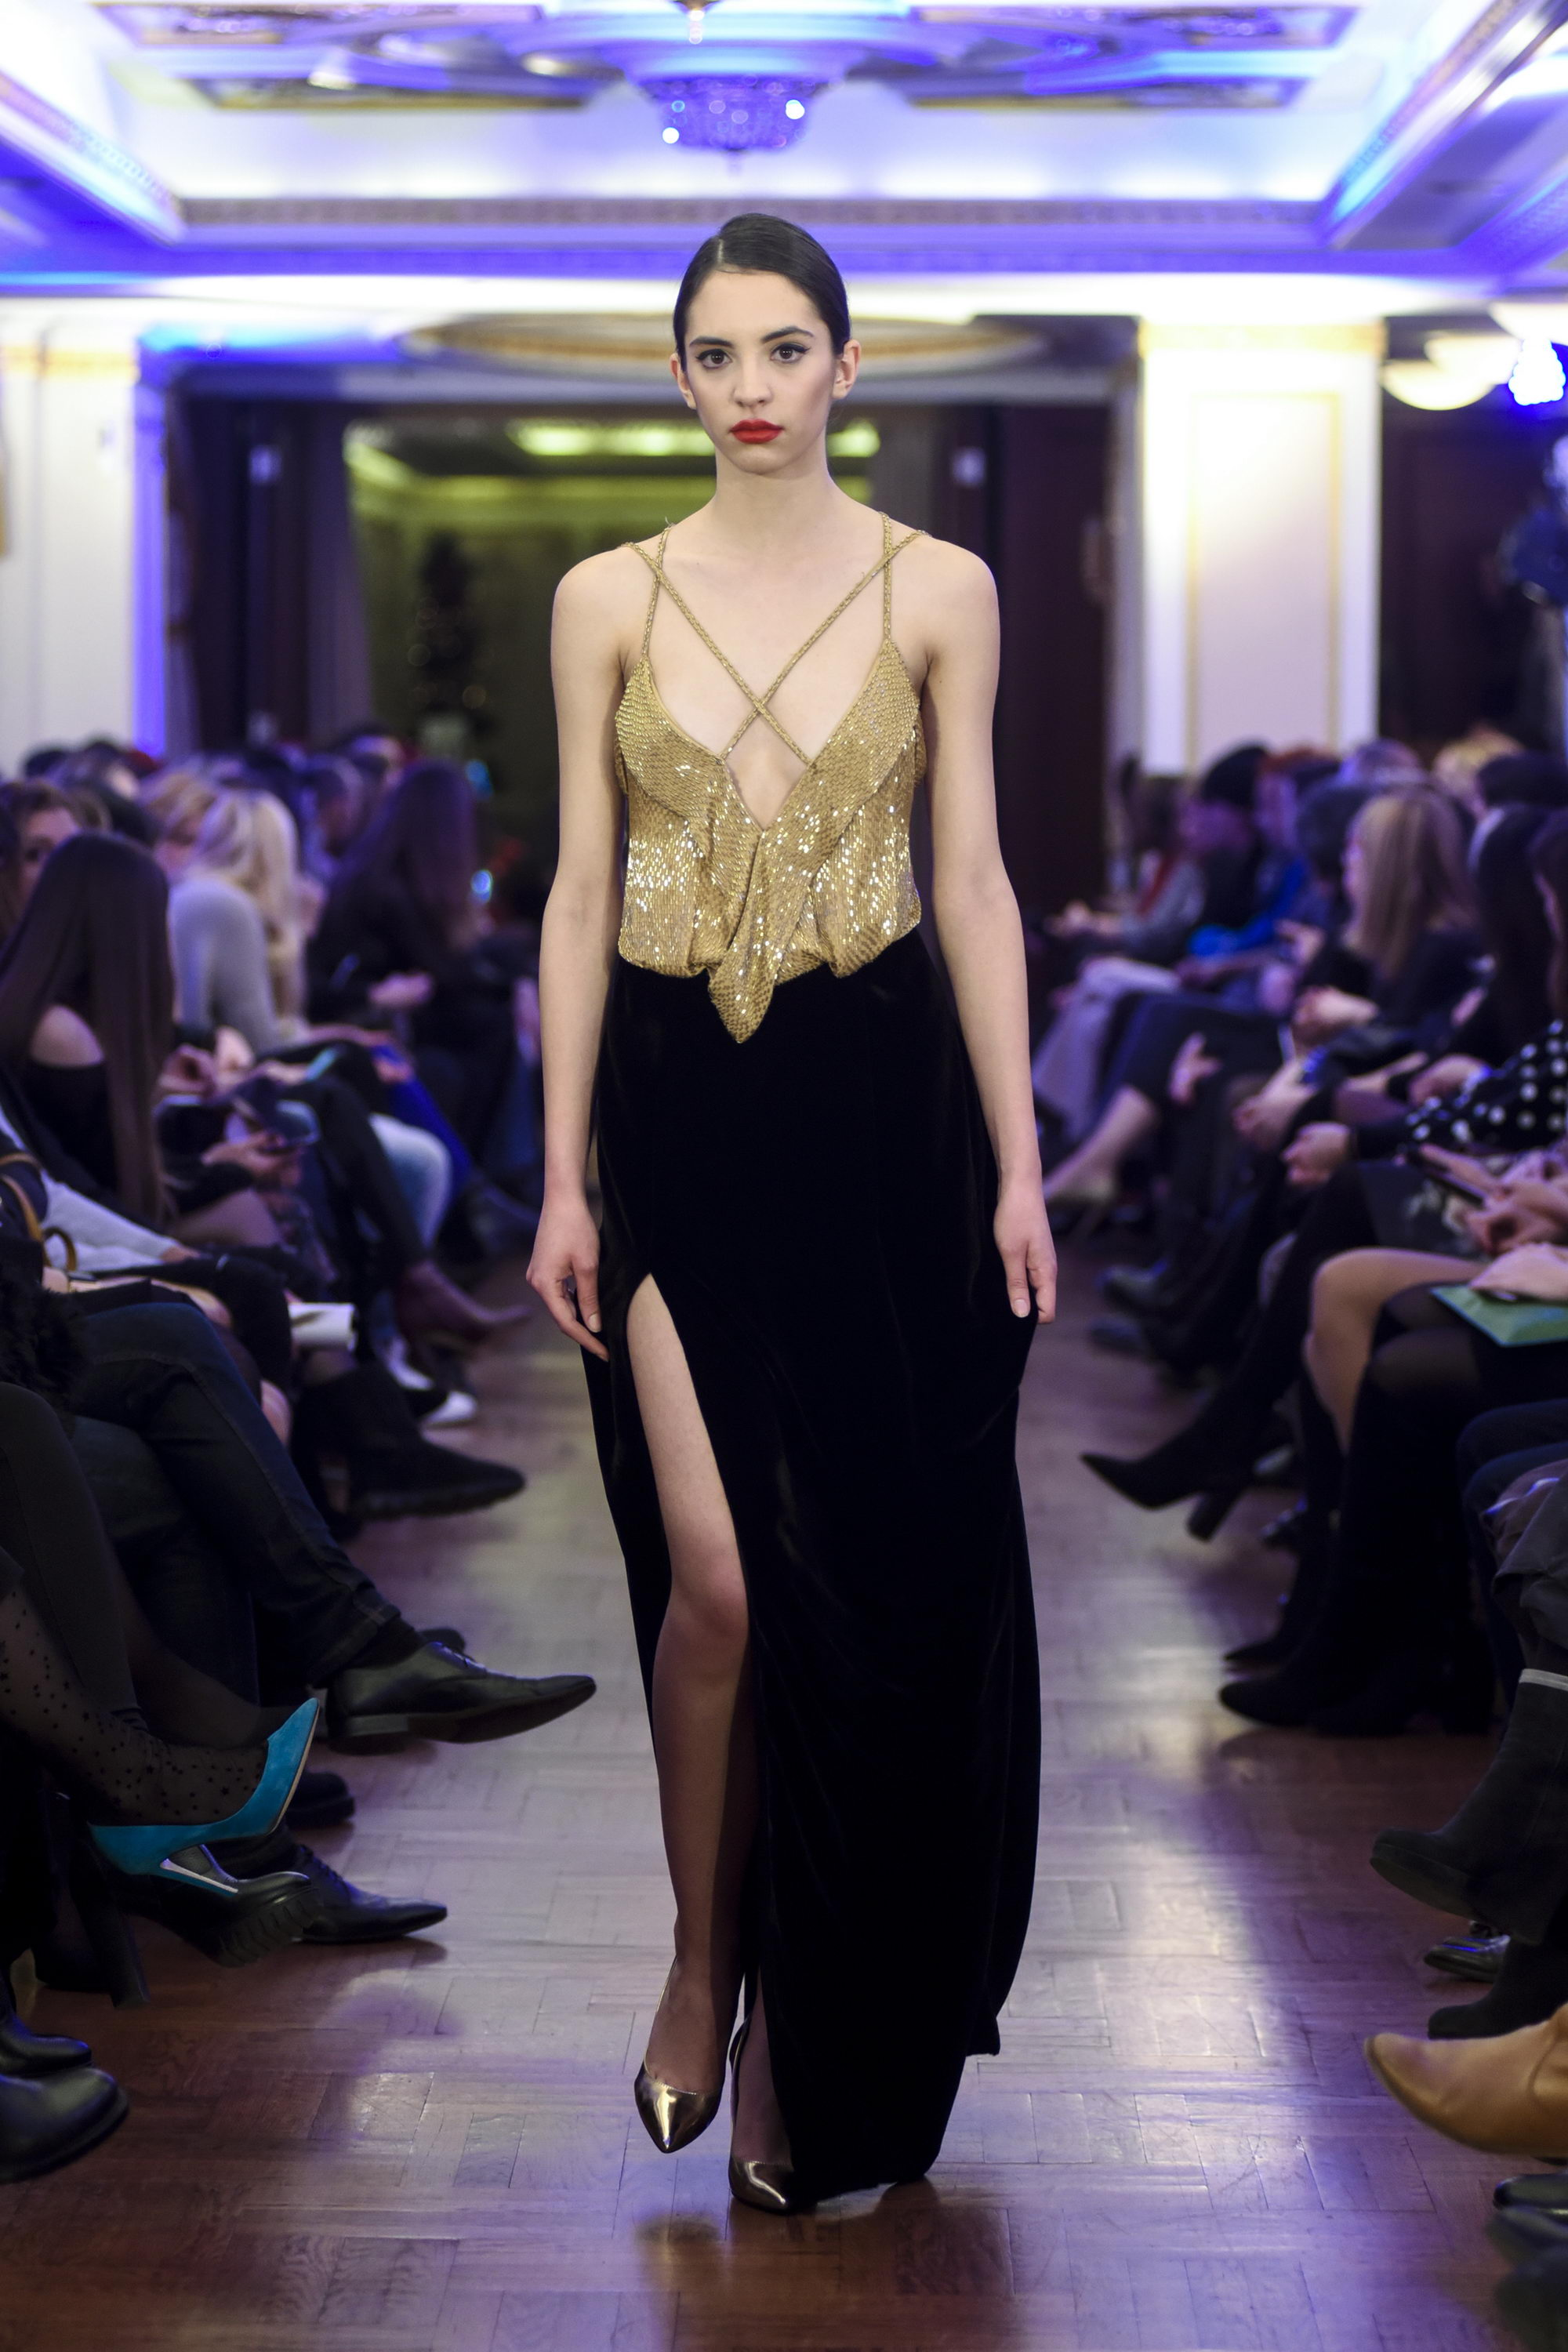 15142698538569_PREDRAG ĐUKNIĆ Glam Fashion Night.jpg